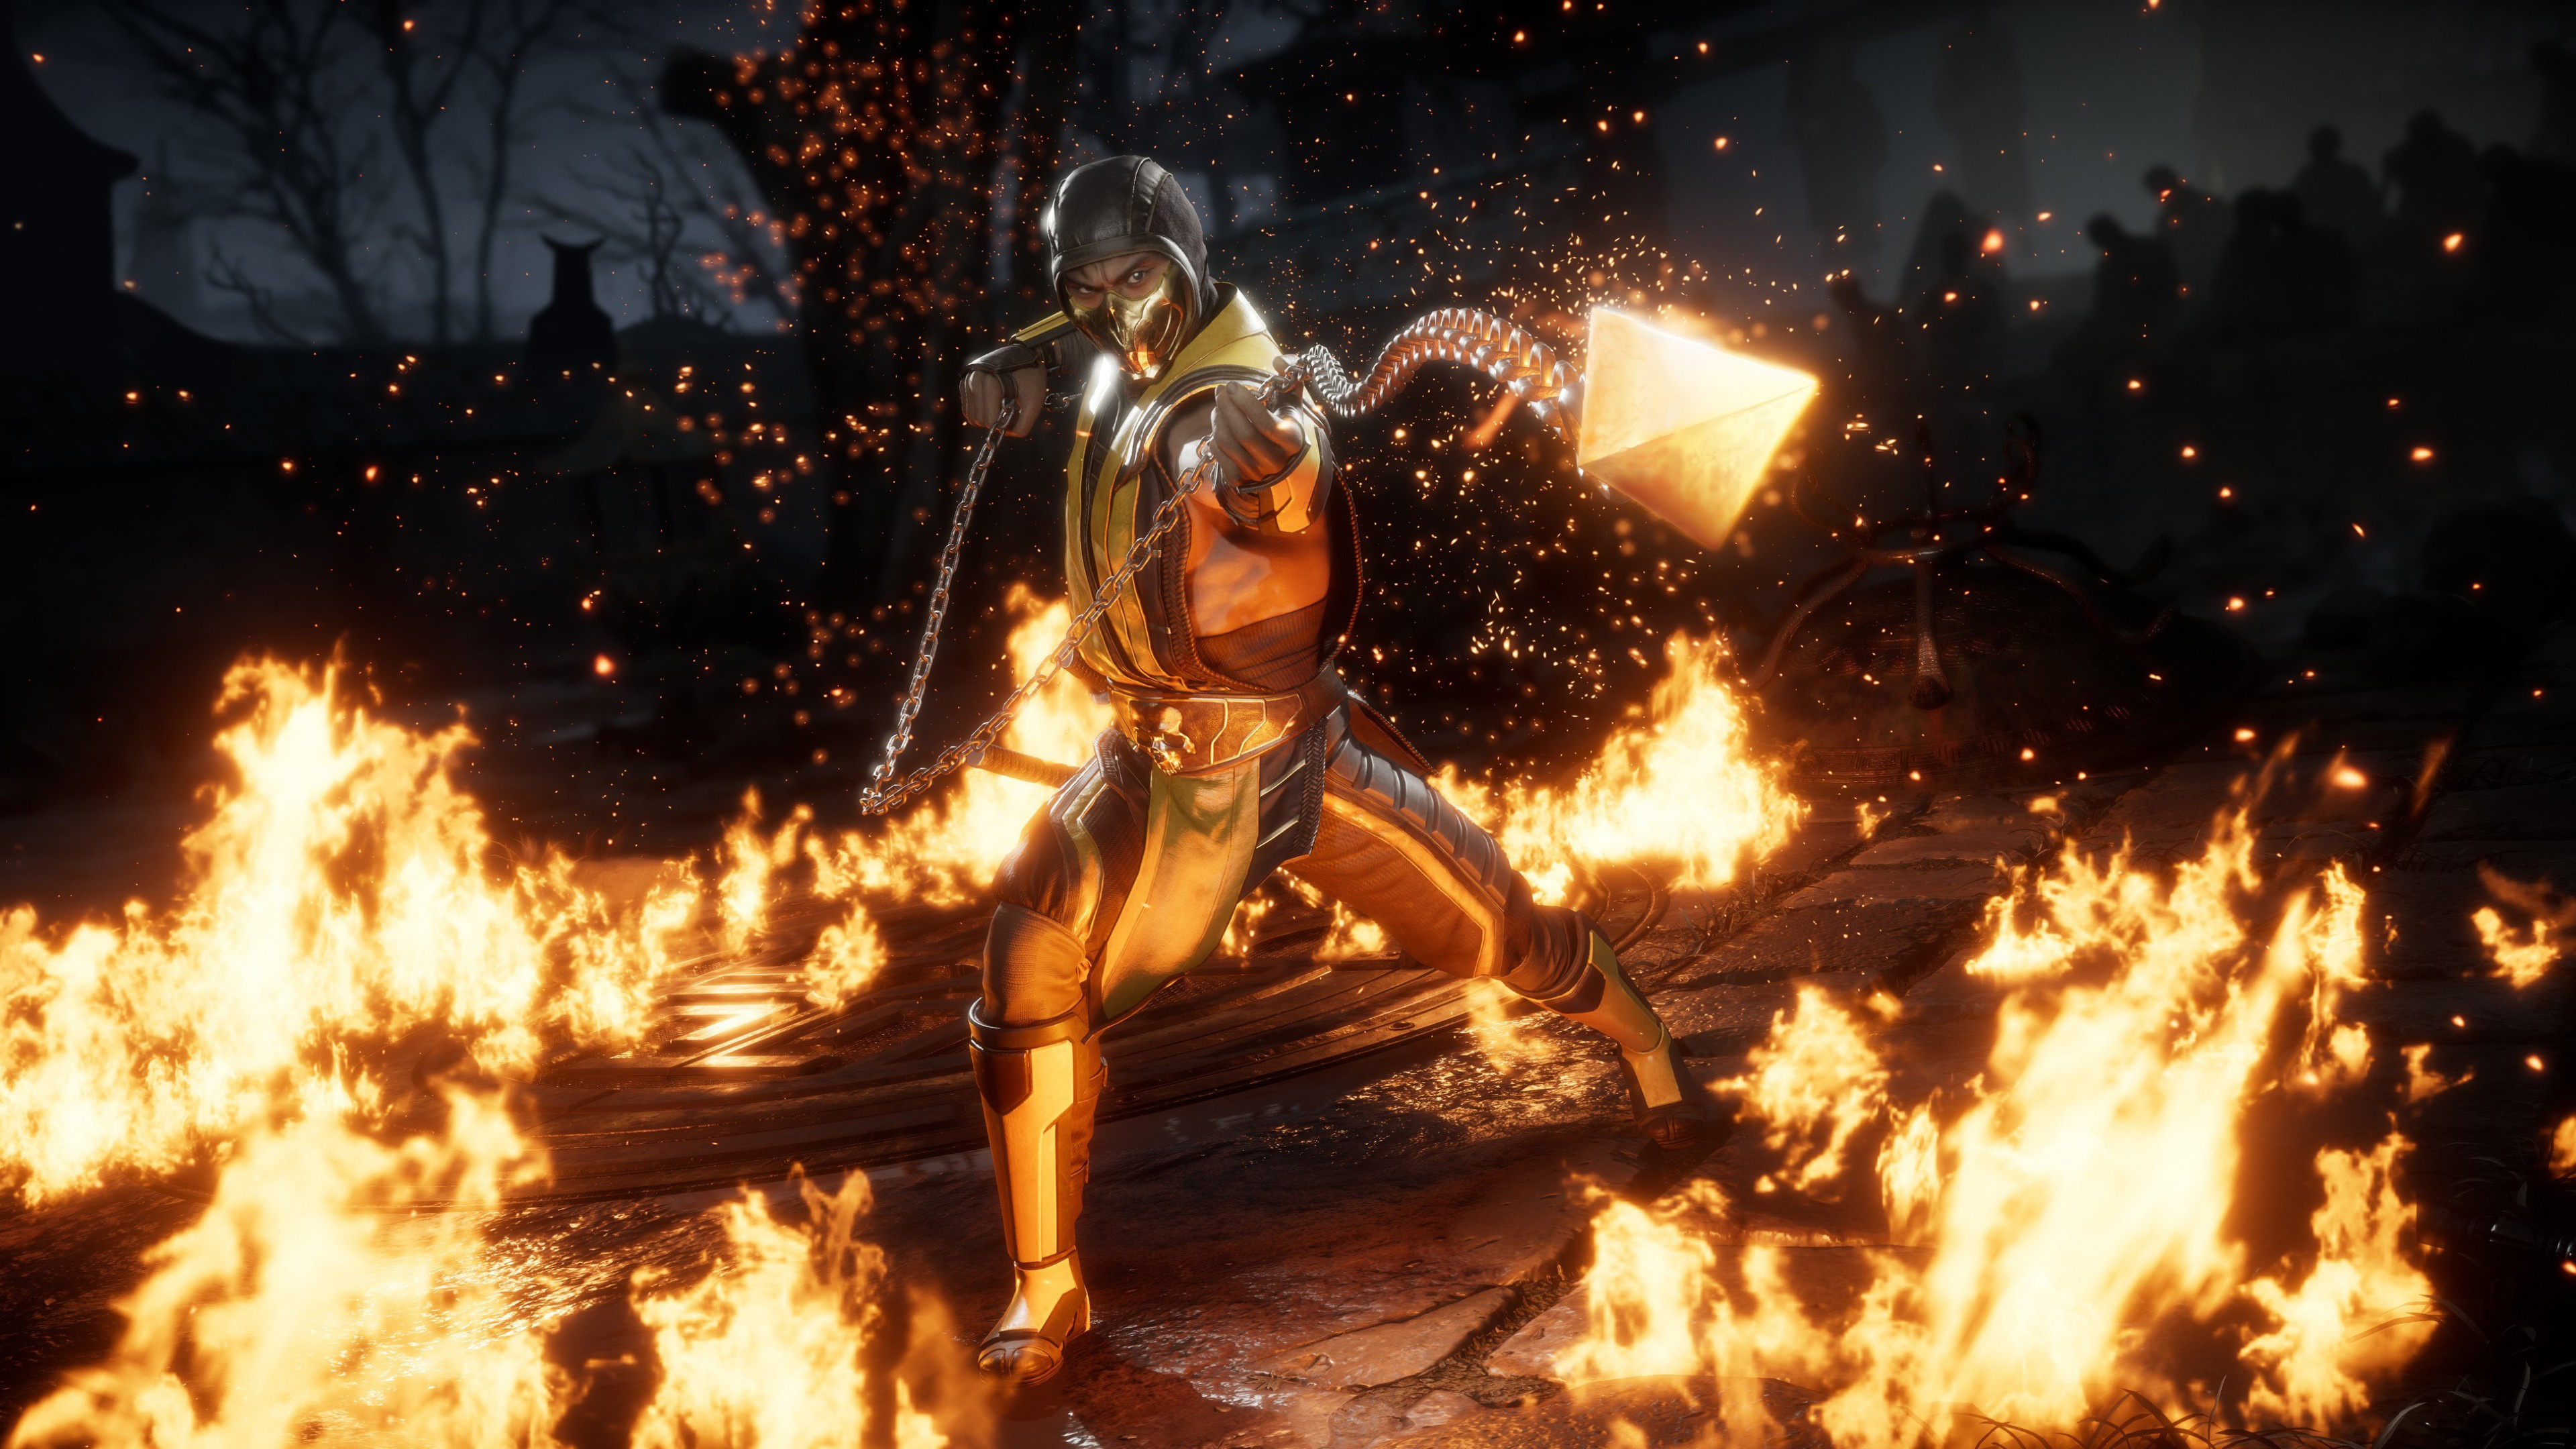 Mortal Kombat 11 Wallpapers in Ultra HD  ed62528fab39